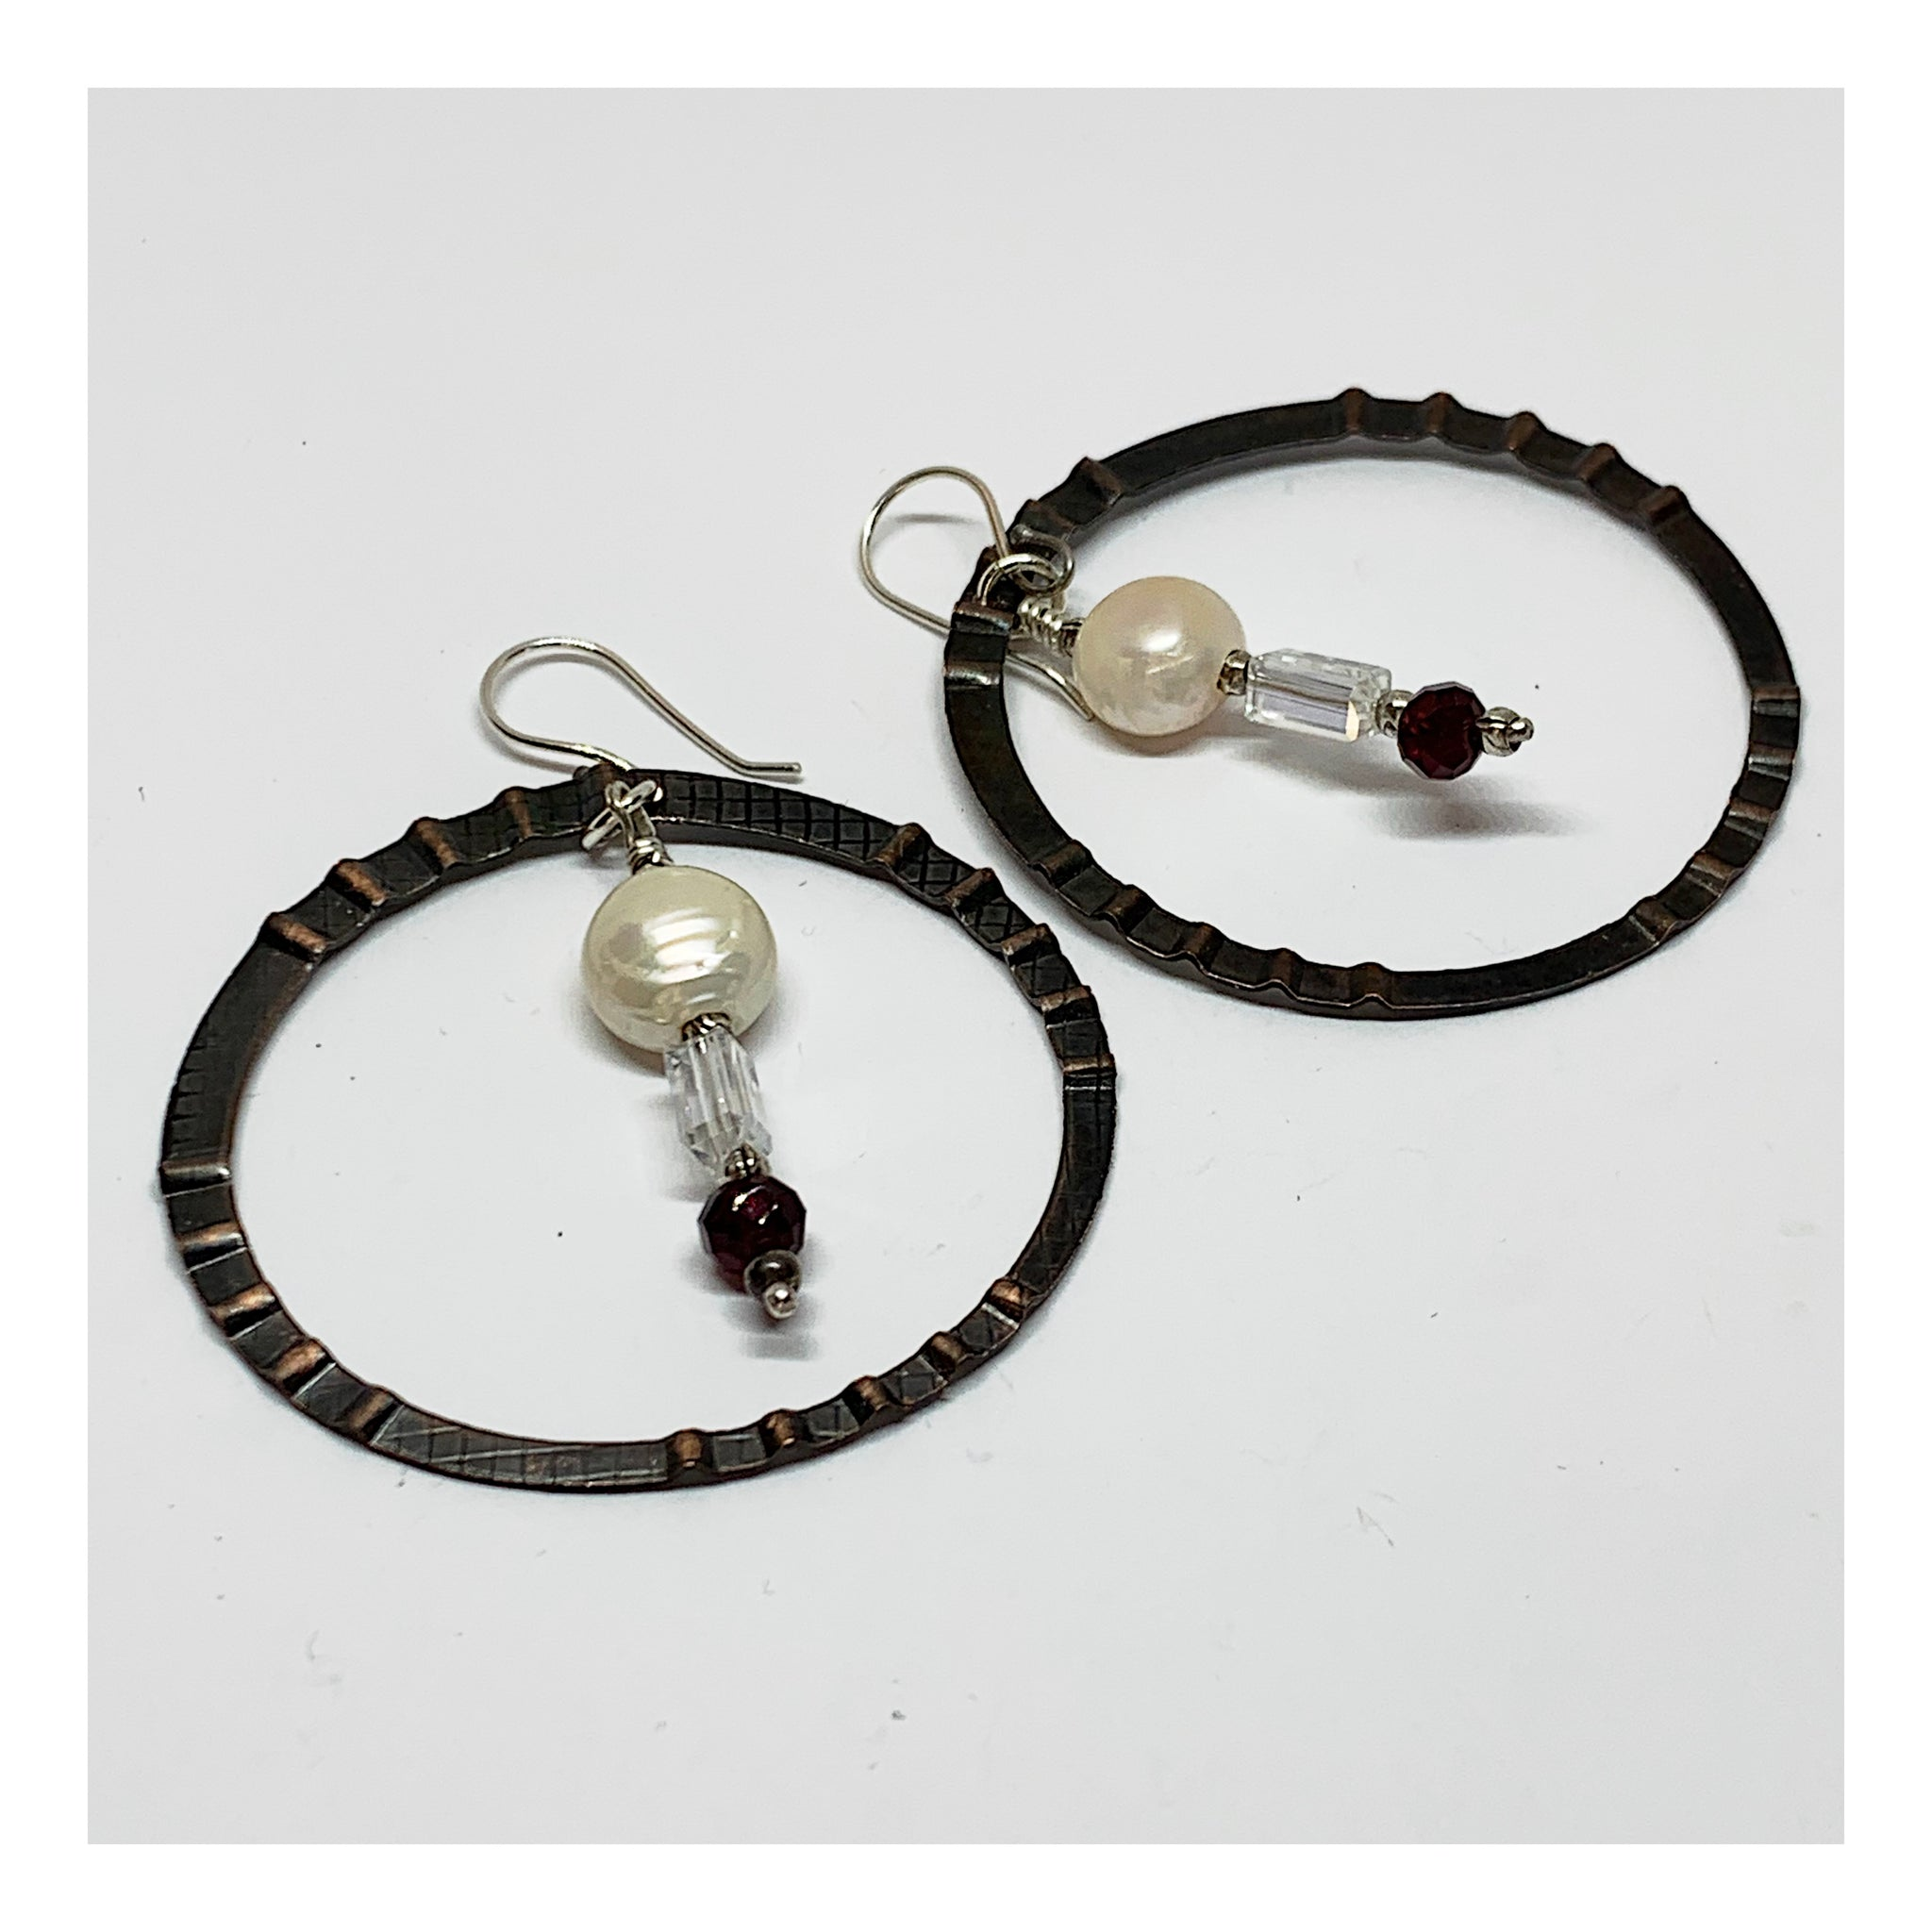 Two Inch Hoop Earrings in Mixed Metals - Unique OOAK Jewelry